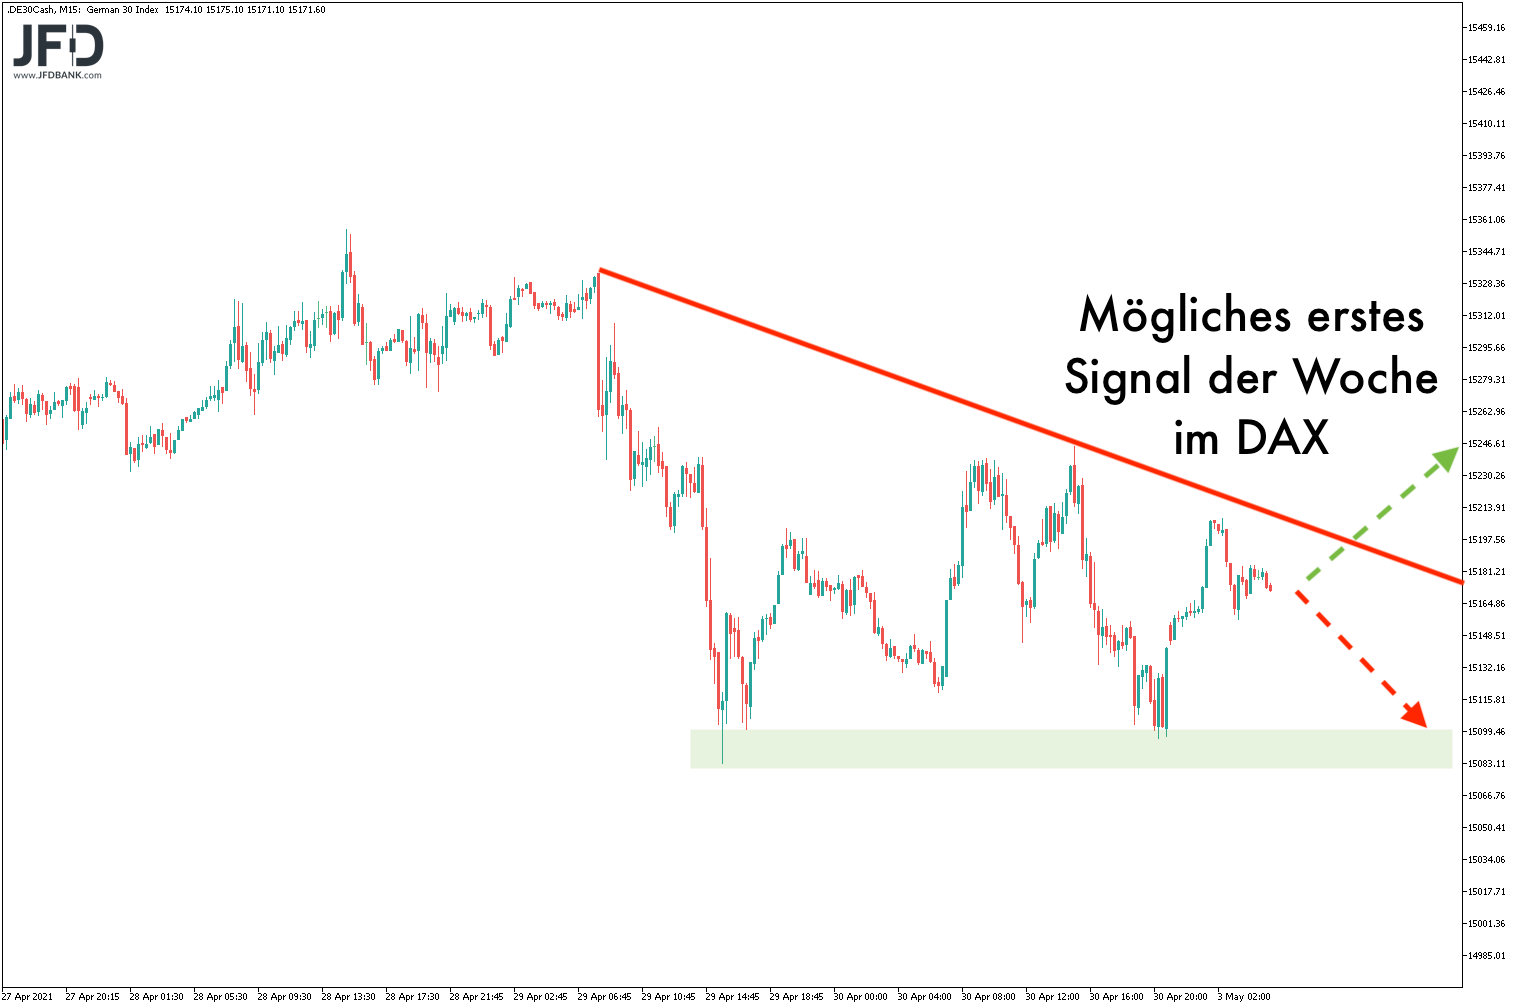 Signallage am Morgen im DAX